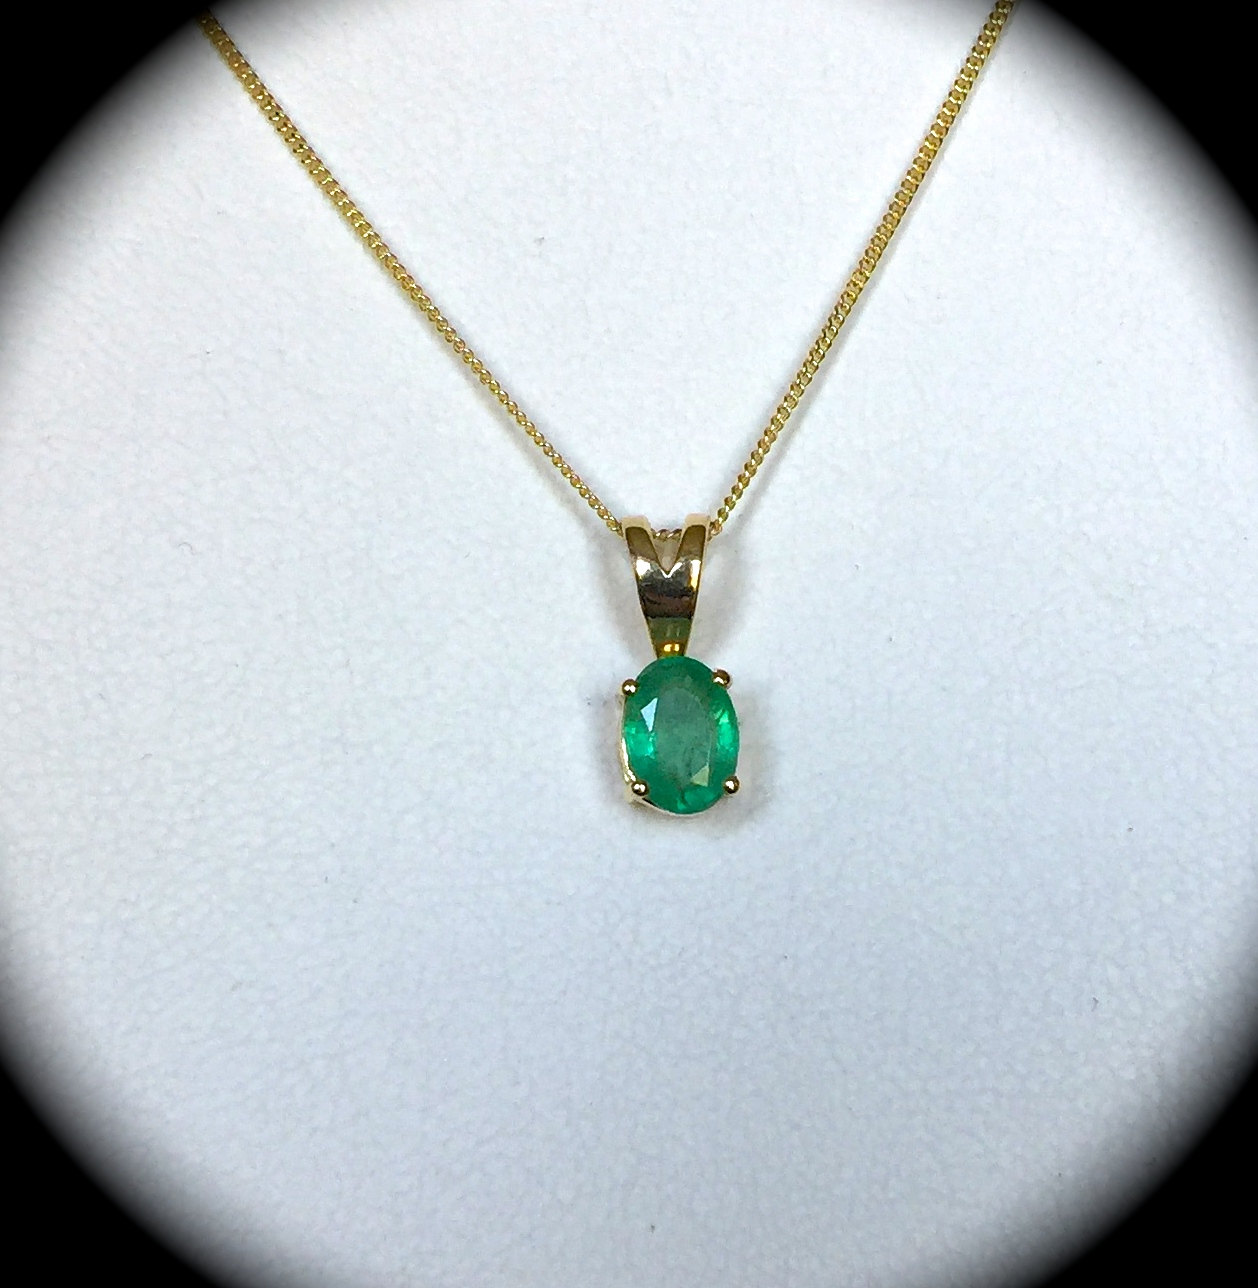 products china mall gemstone accented halo necklace pendant wholesale ables gold emerald natural diamond in